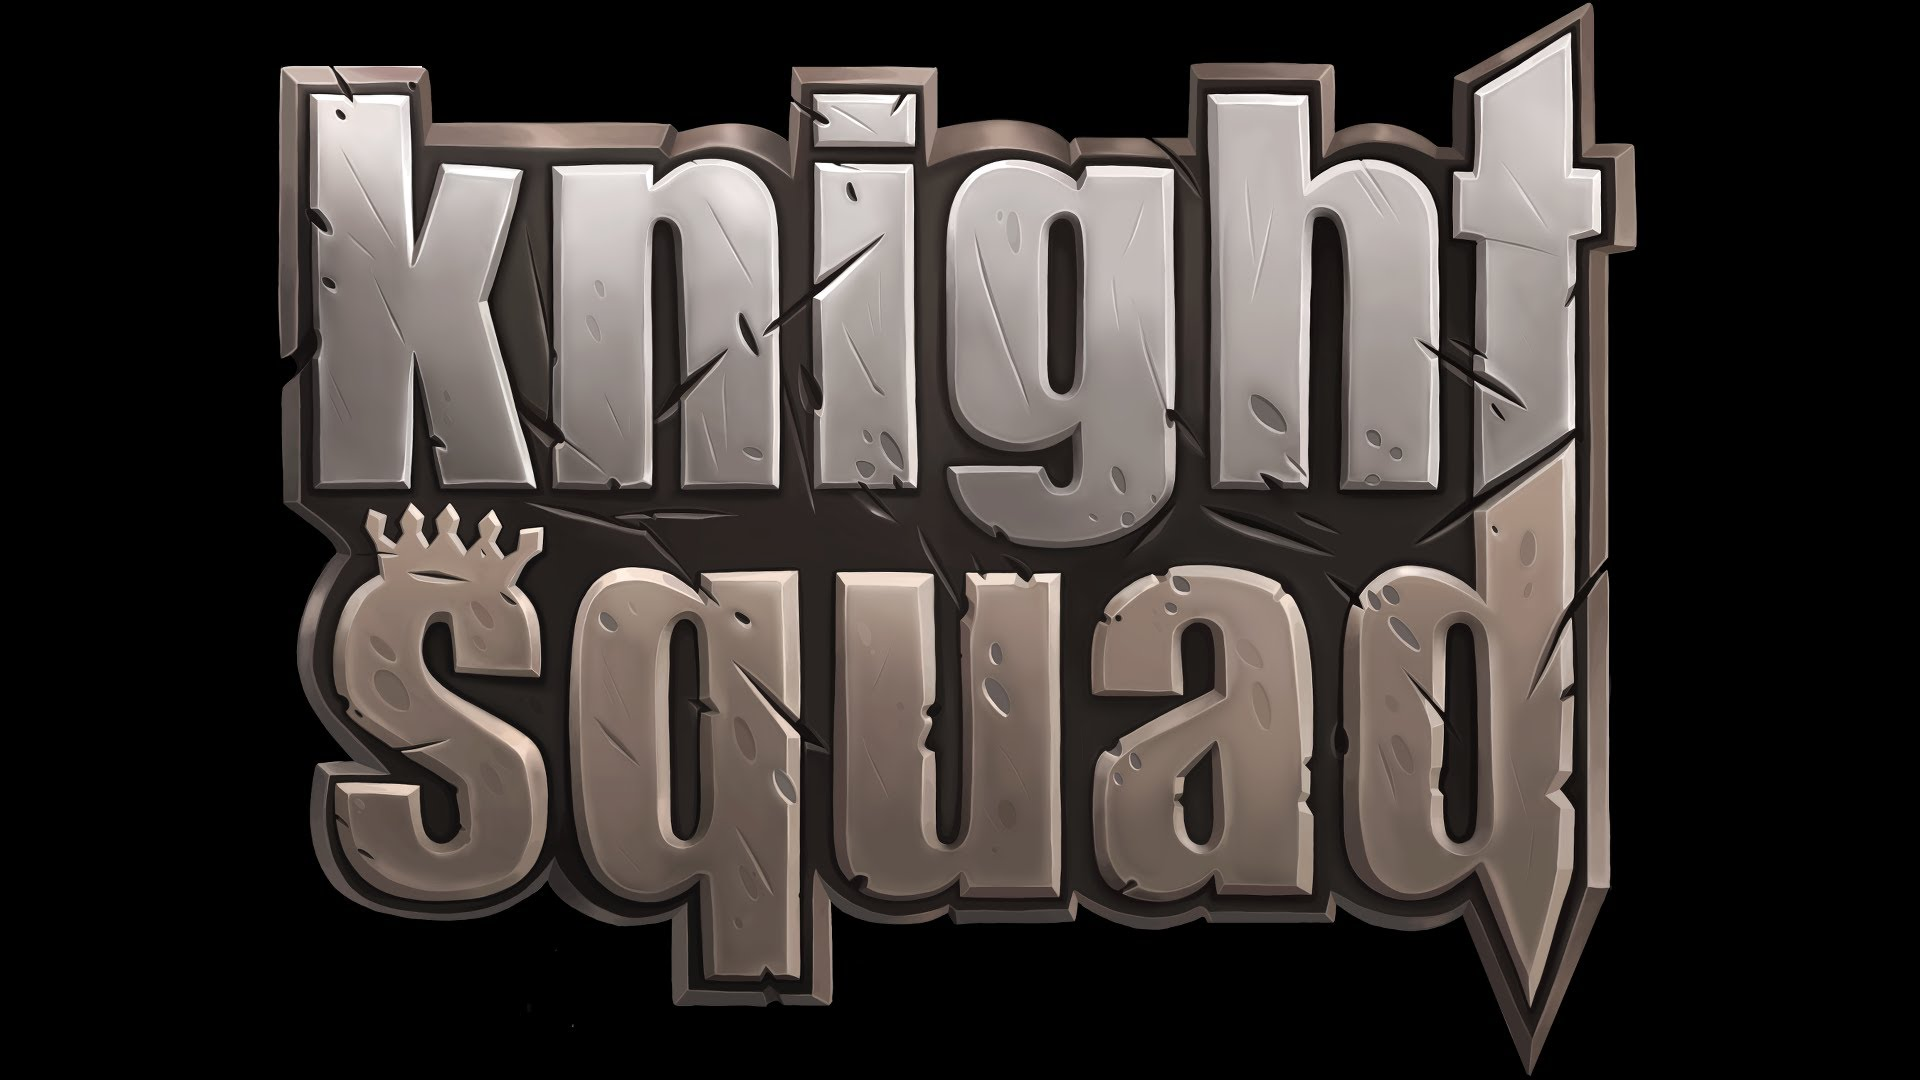 [GC14] Knight Squad